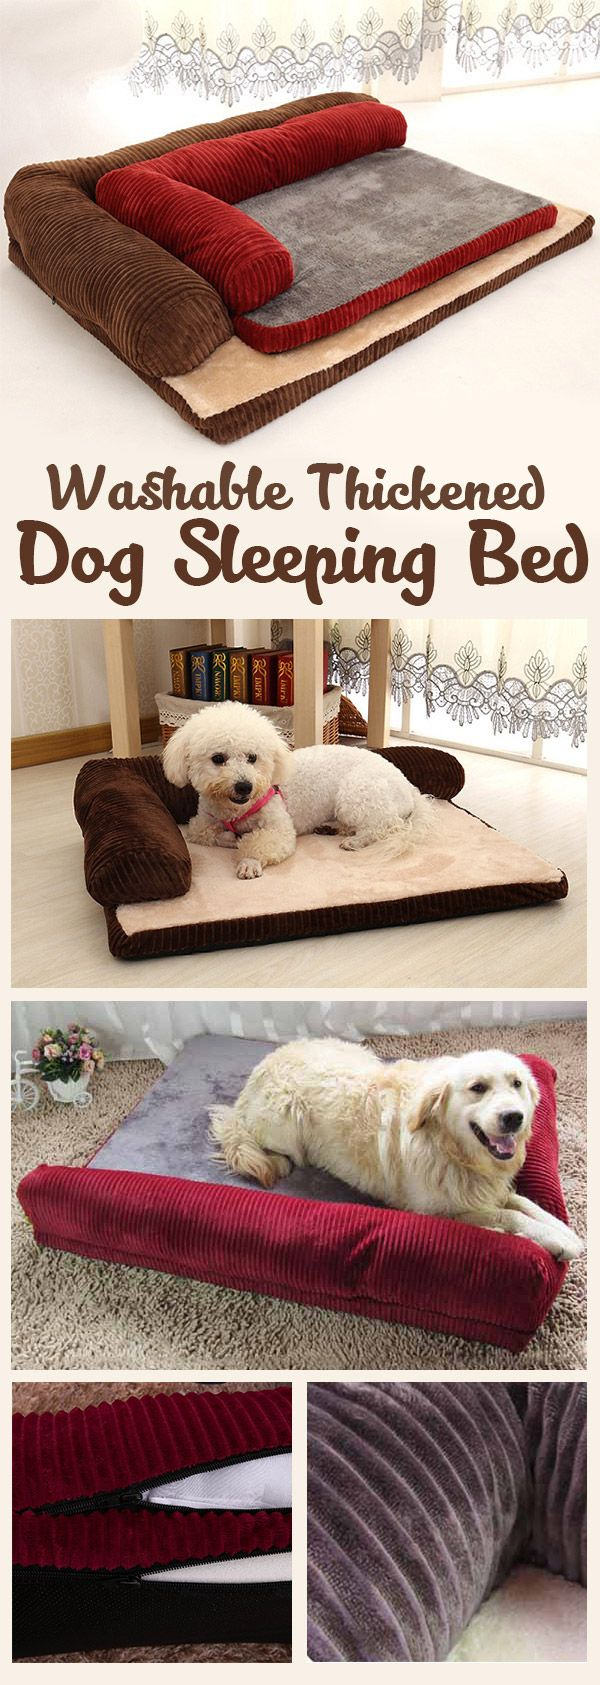 US$17.99-HAPET Washable Thickened Dog Sleeping Bed Pad Pet Detachable Resistance To Bite Sofa Mat#newchic#pet#bedding